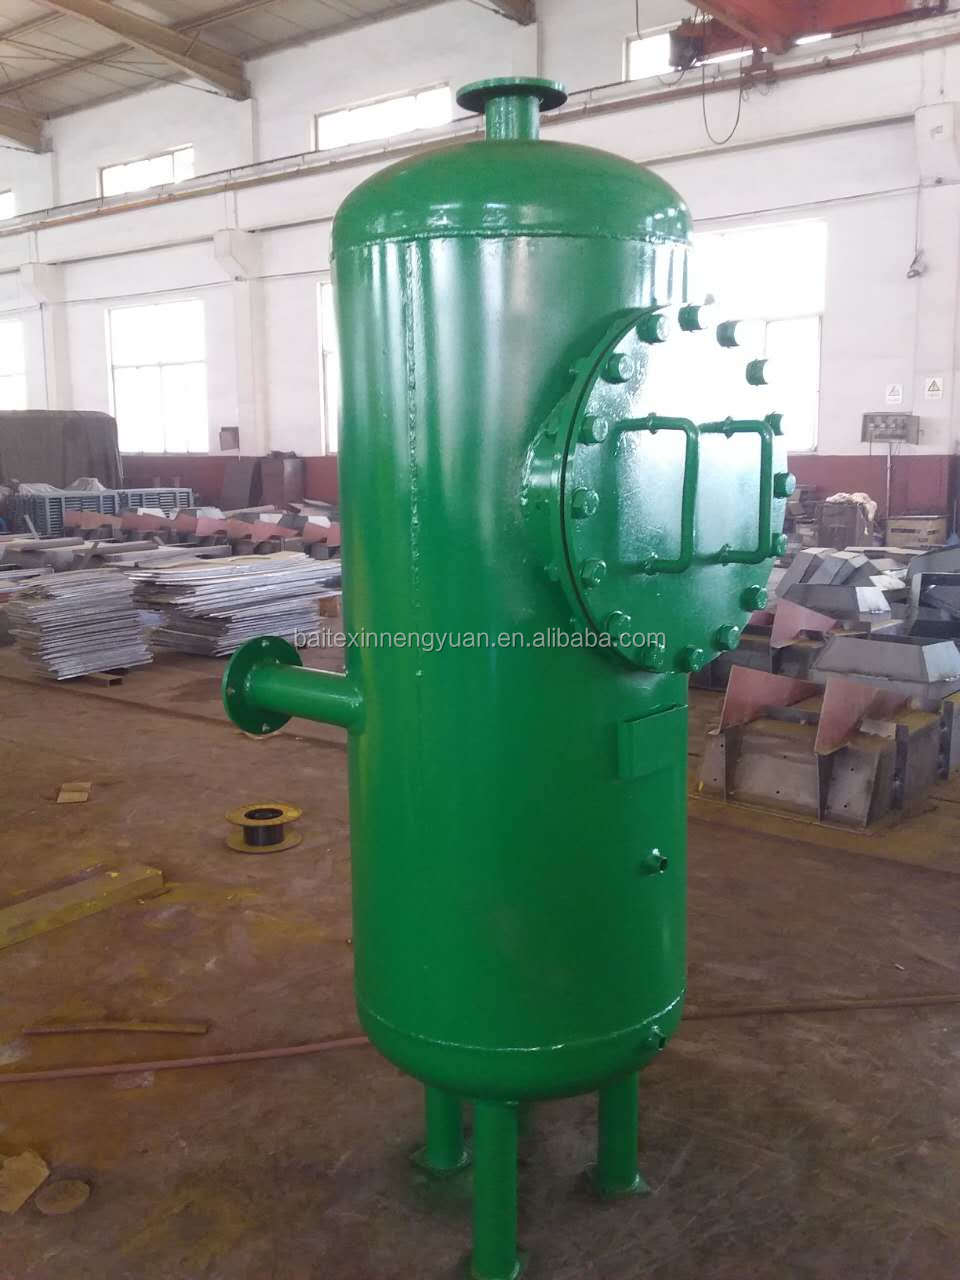 Biogas dehydration filter removing water vapour